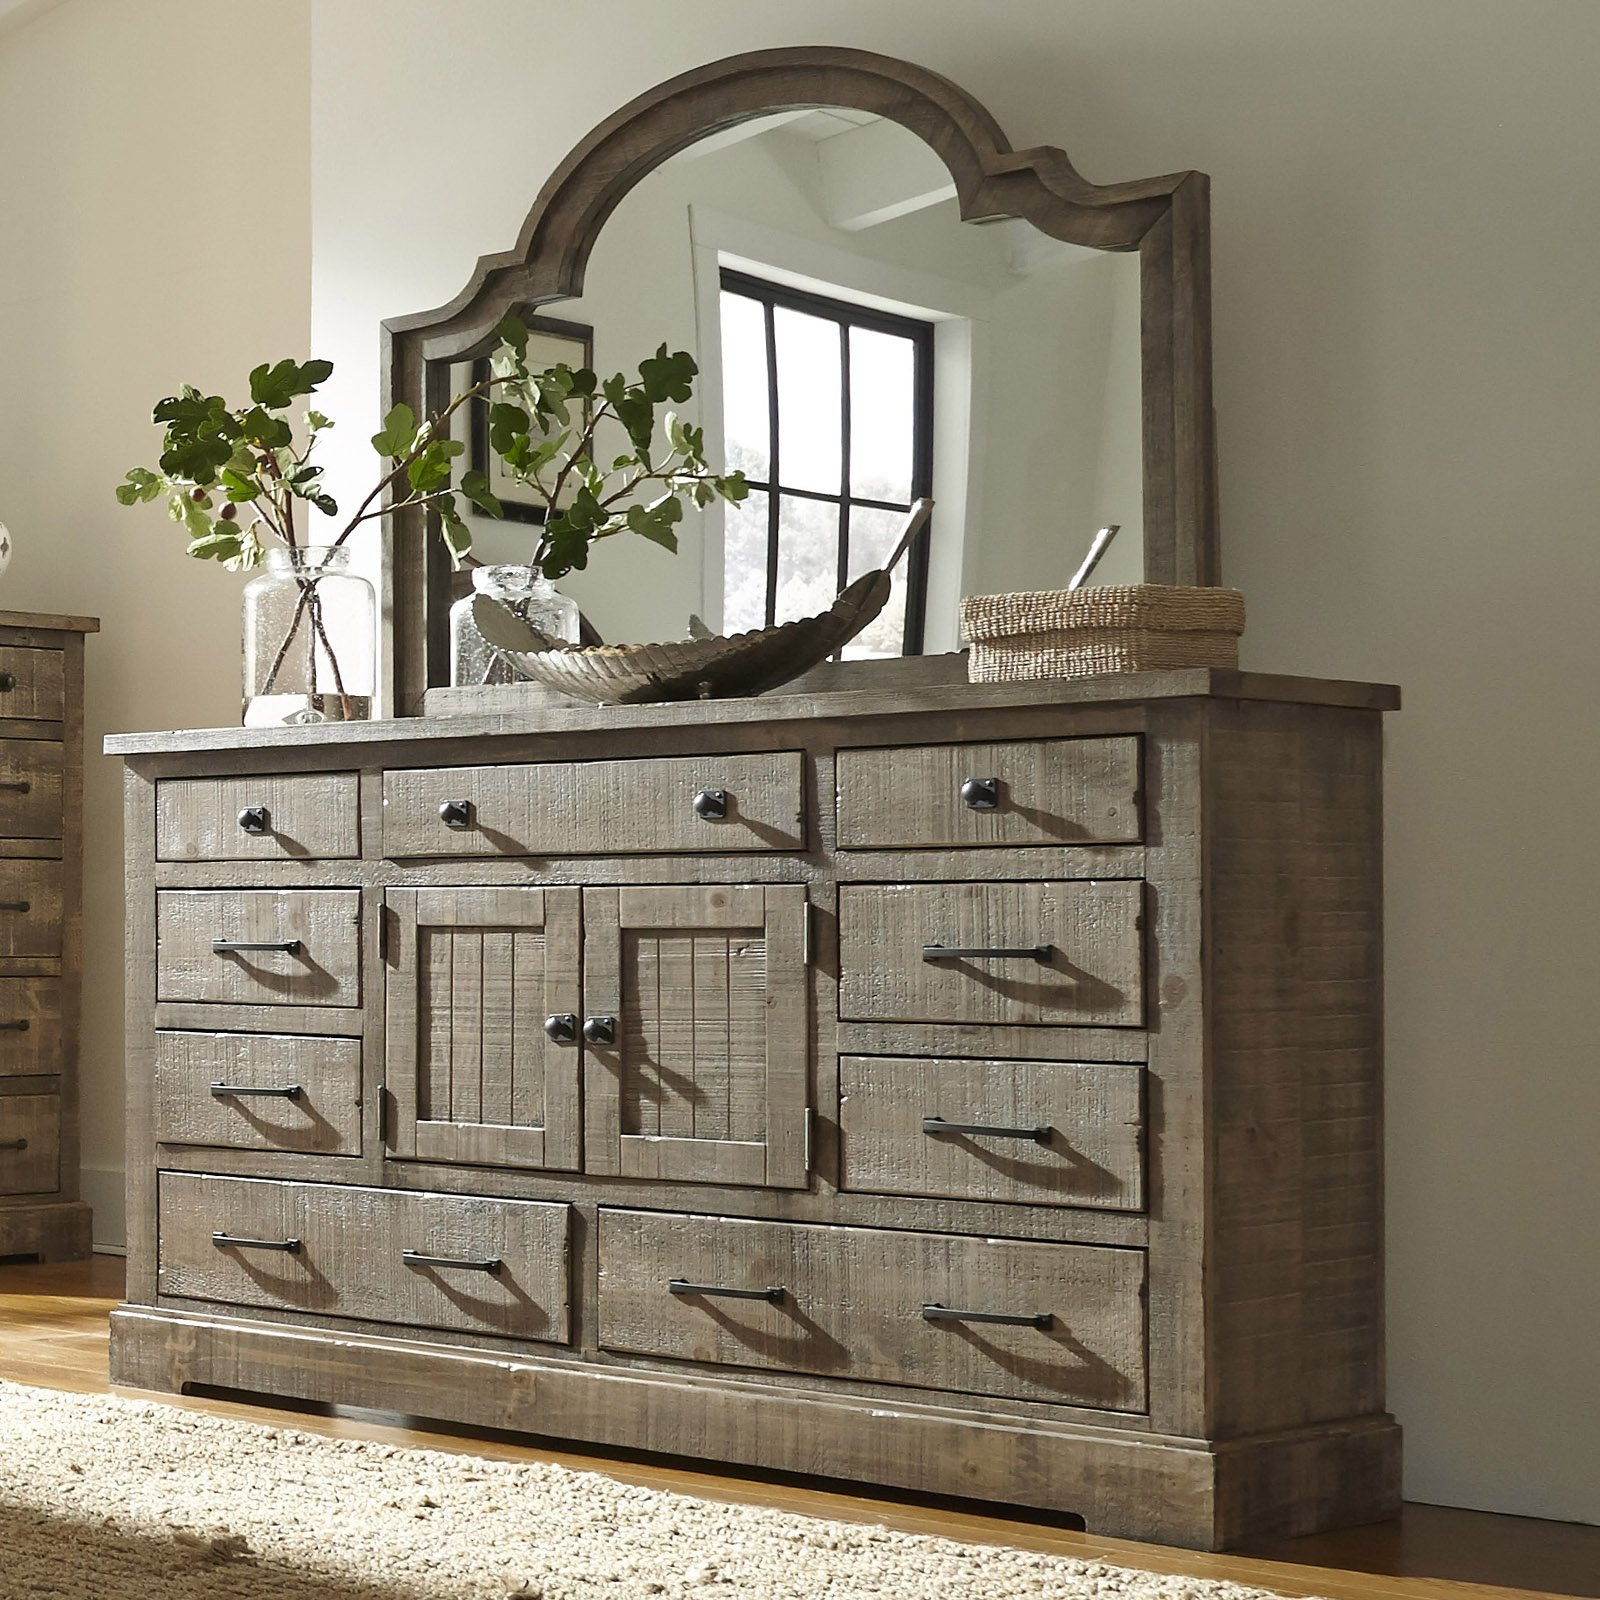 Awesome Sauder Chest Of Drawers Walmart